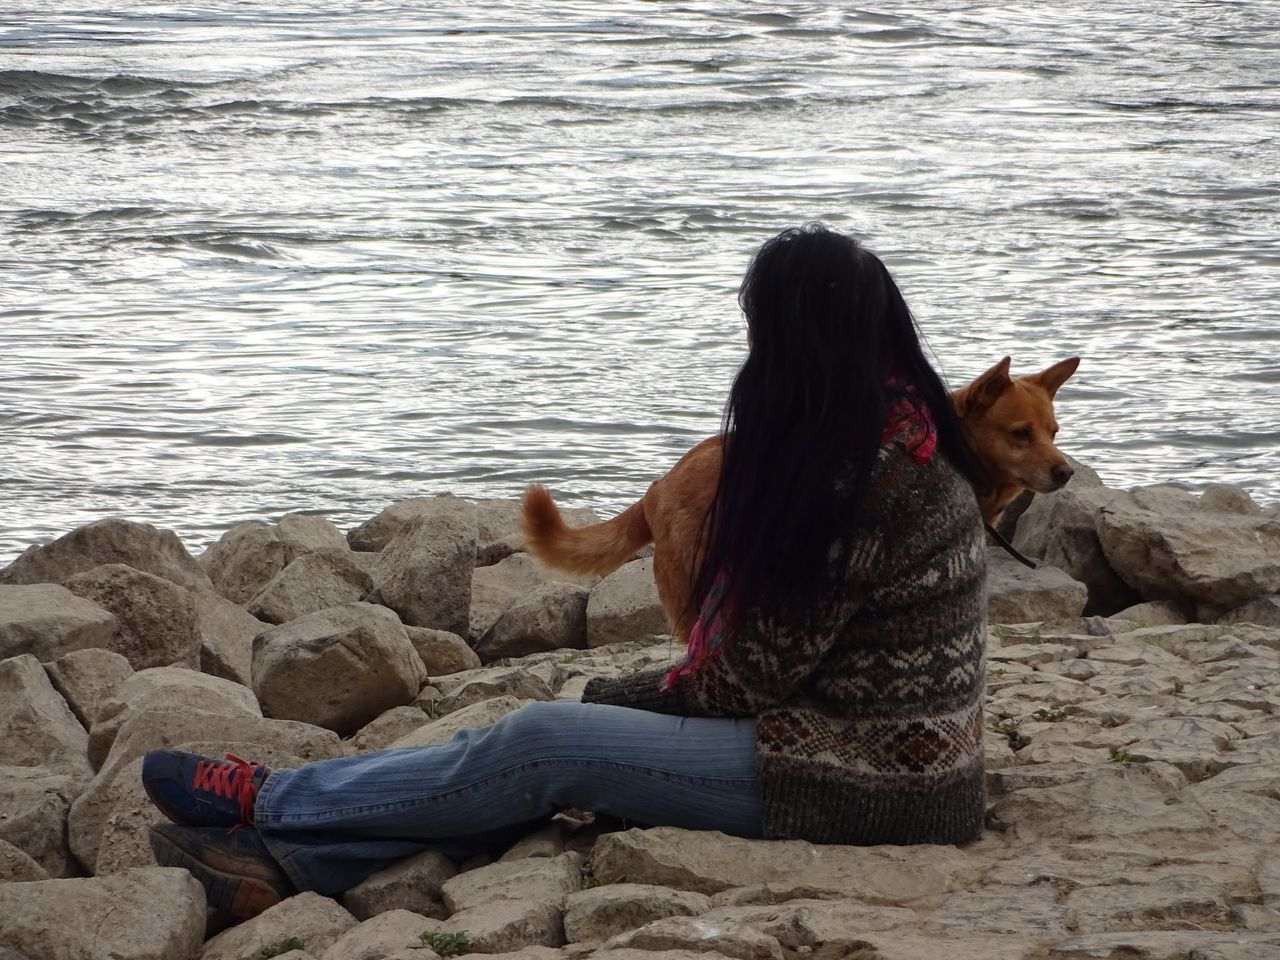 I with a baby at the rhine Animal Themes Beach Beauty In Nature Bonn Day Dog Domestic Animals Full Length I With A Baby At The Rhine Mammal Nature One Animal One Person Outdoors Pet Clothing Pets Real People Rhine Sea Water